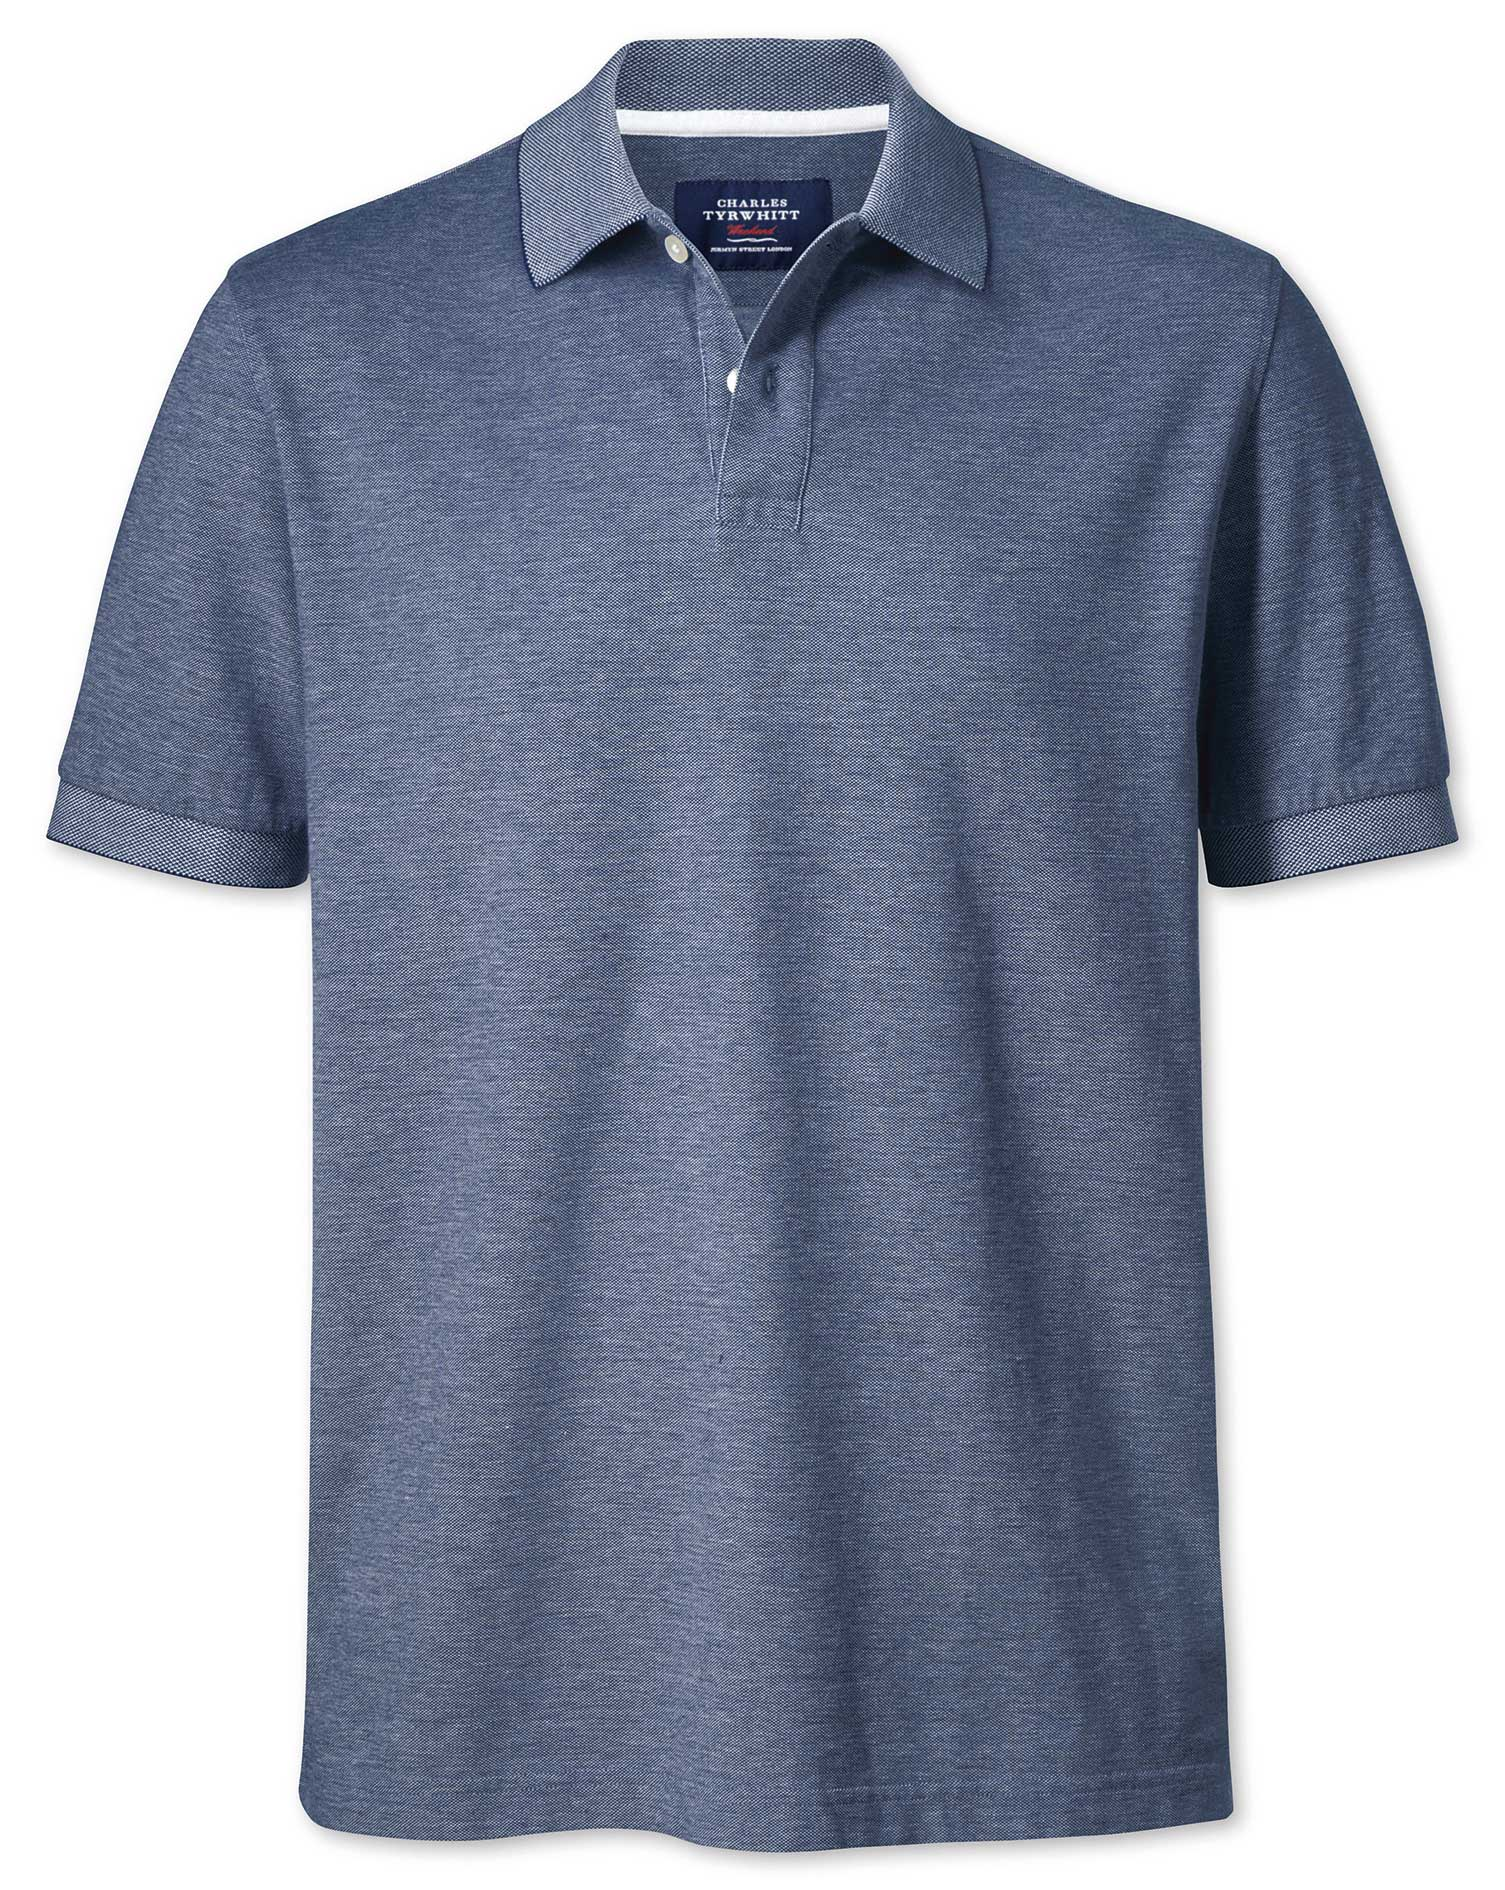 Chambray Oxford Cotton Polo Size Medium by Charles Tyrwhitt